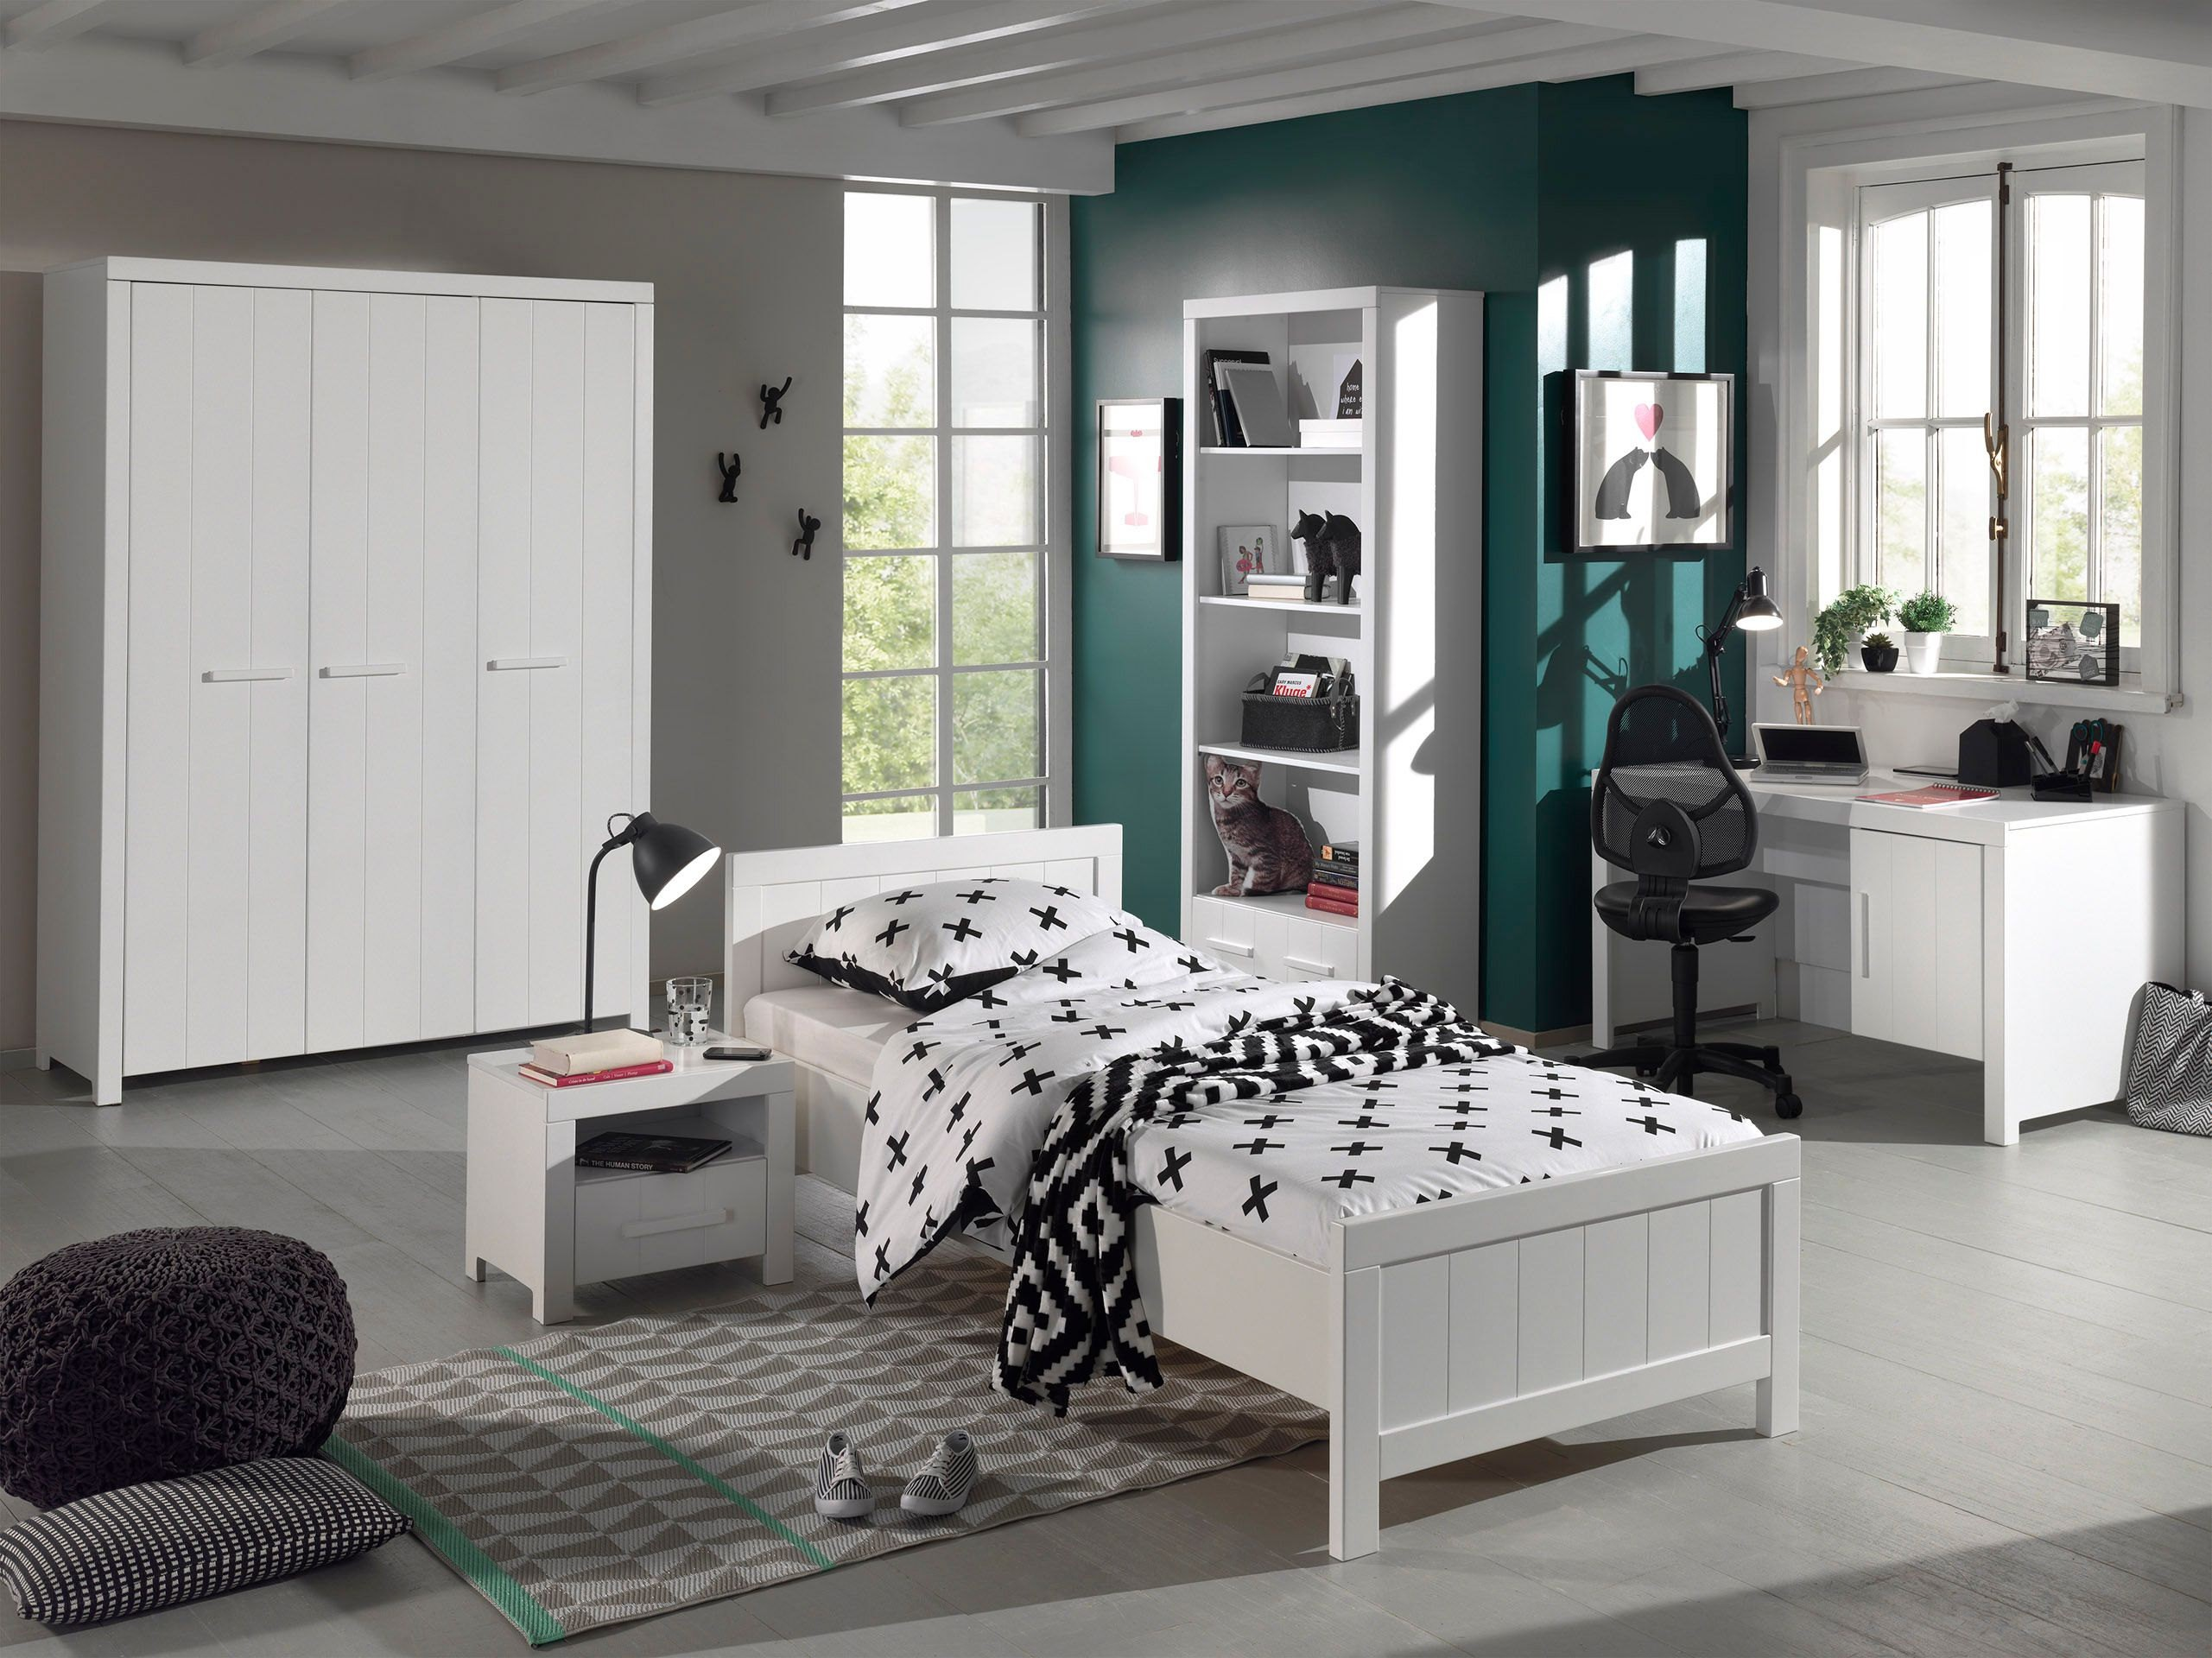 kleiderschrank erik 3 t rig wei kinder jugendzimmer. Black Bedroom Furniture Sets. Home Design Ideas